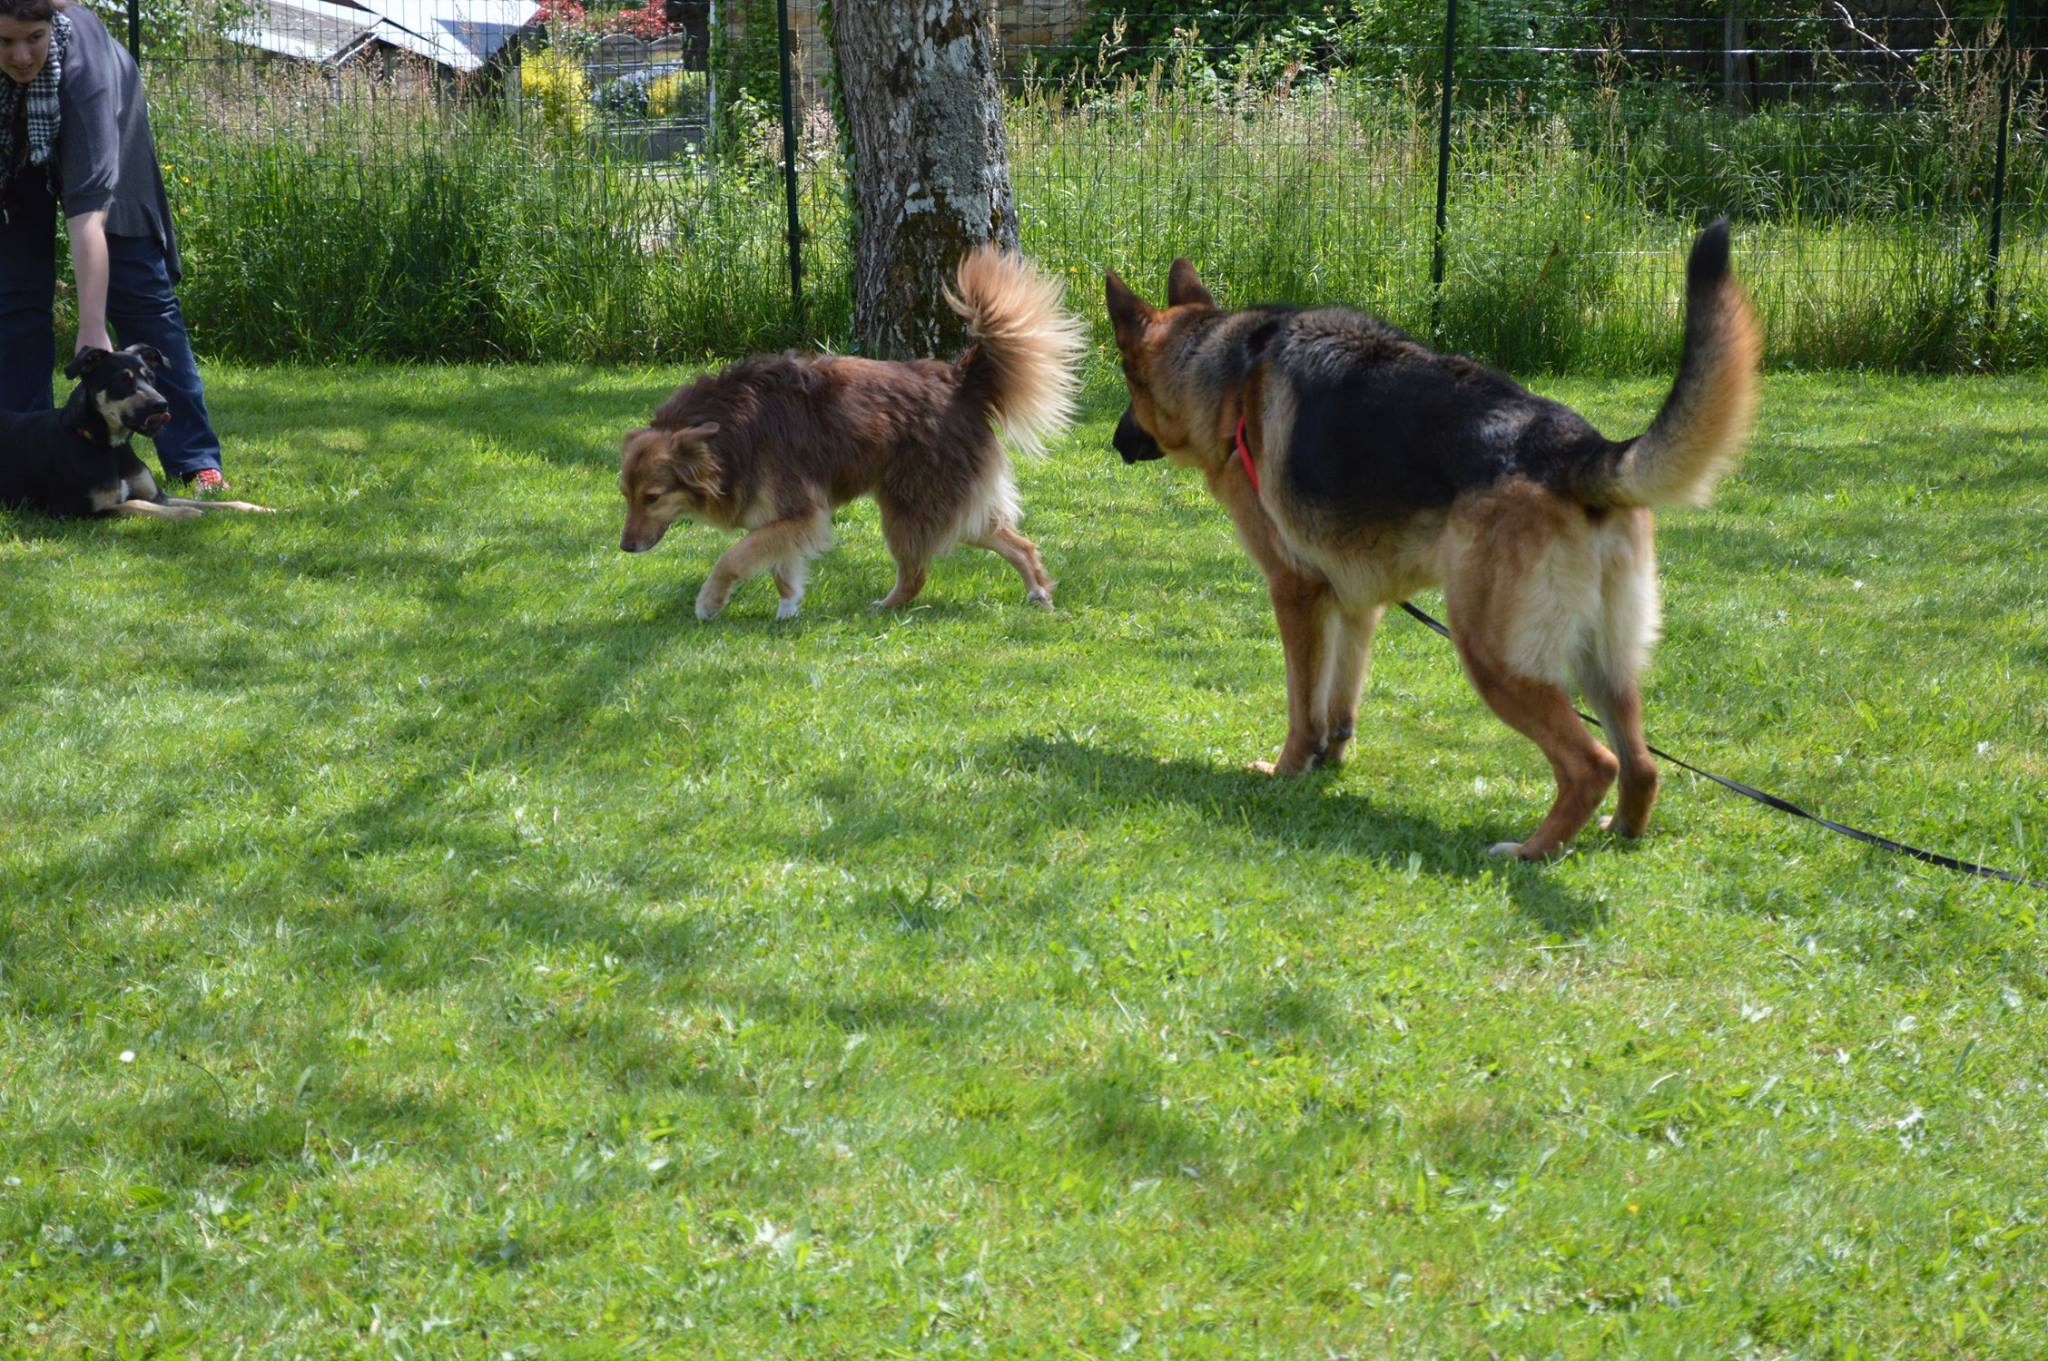 Berger allemand , education canine 35 , image ars canis , signaux d'appaisement chien